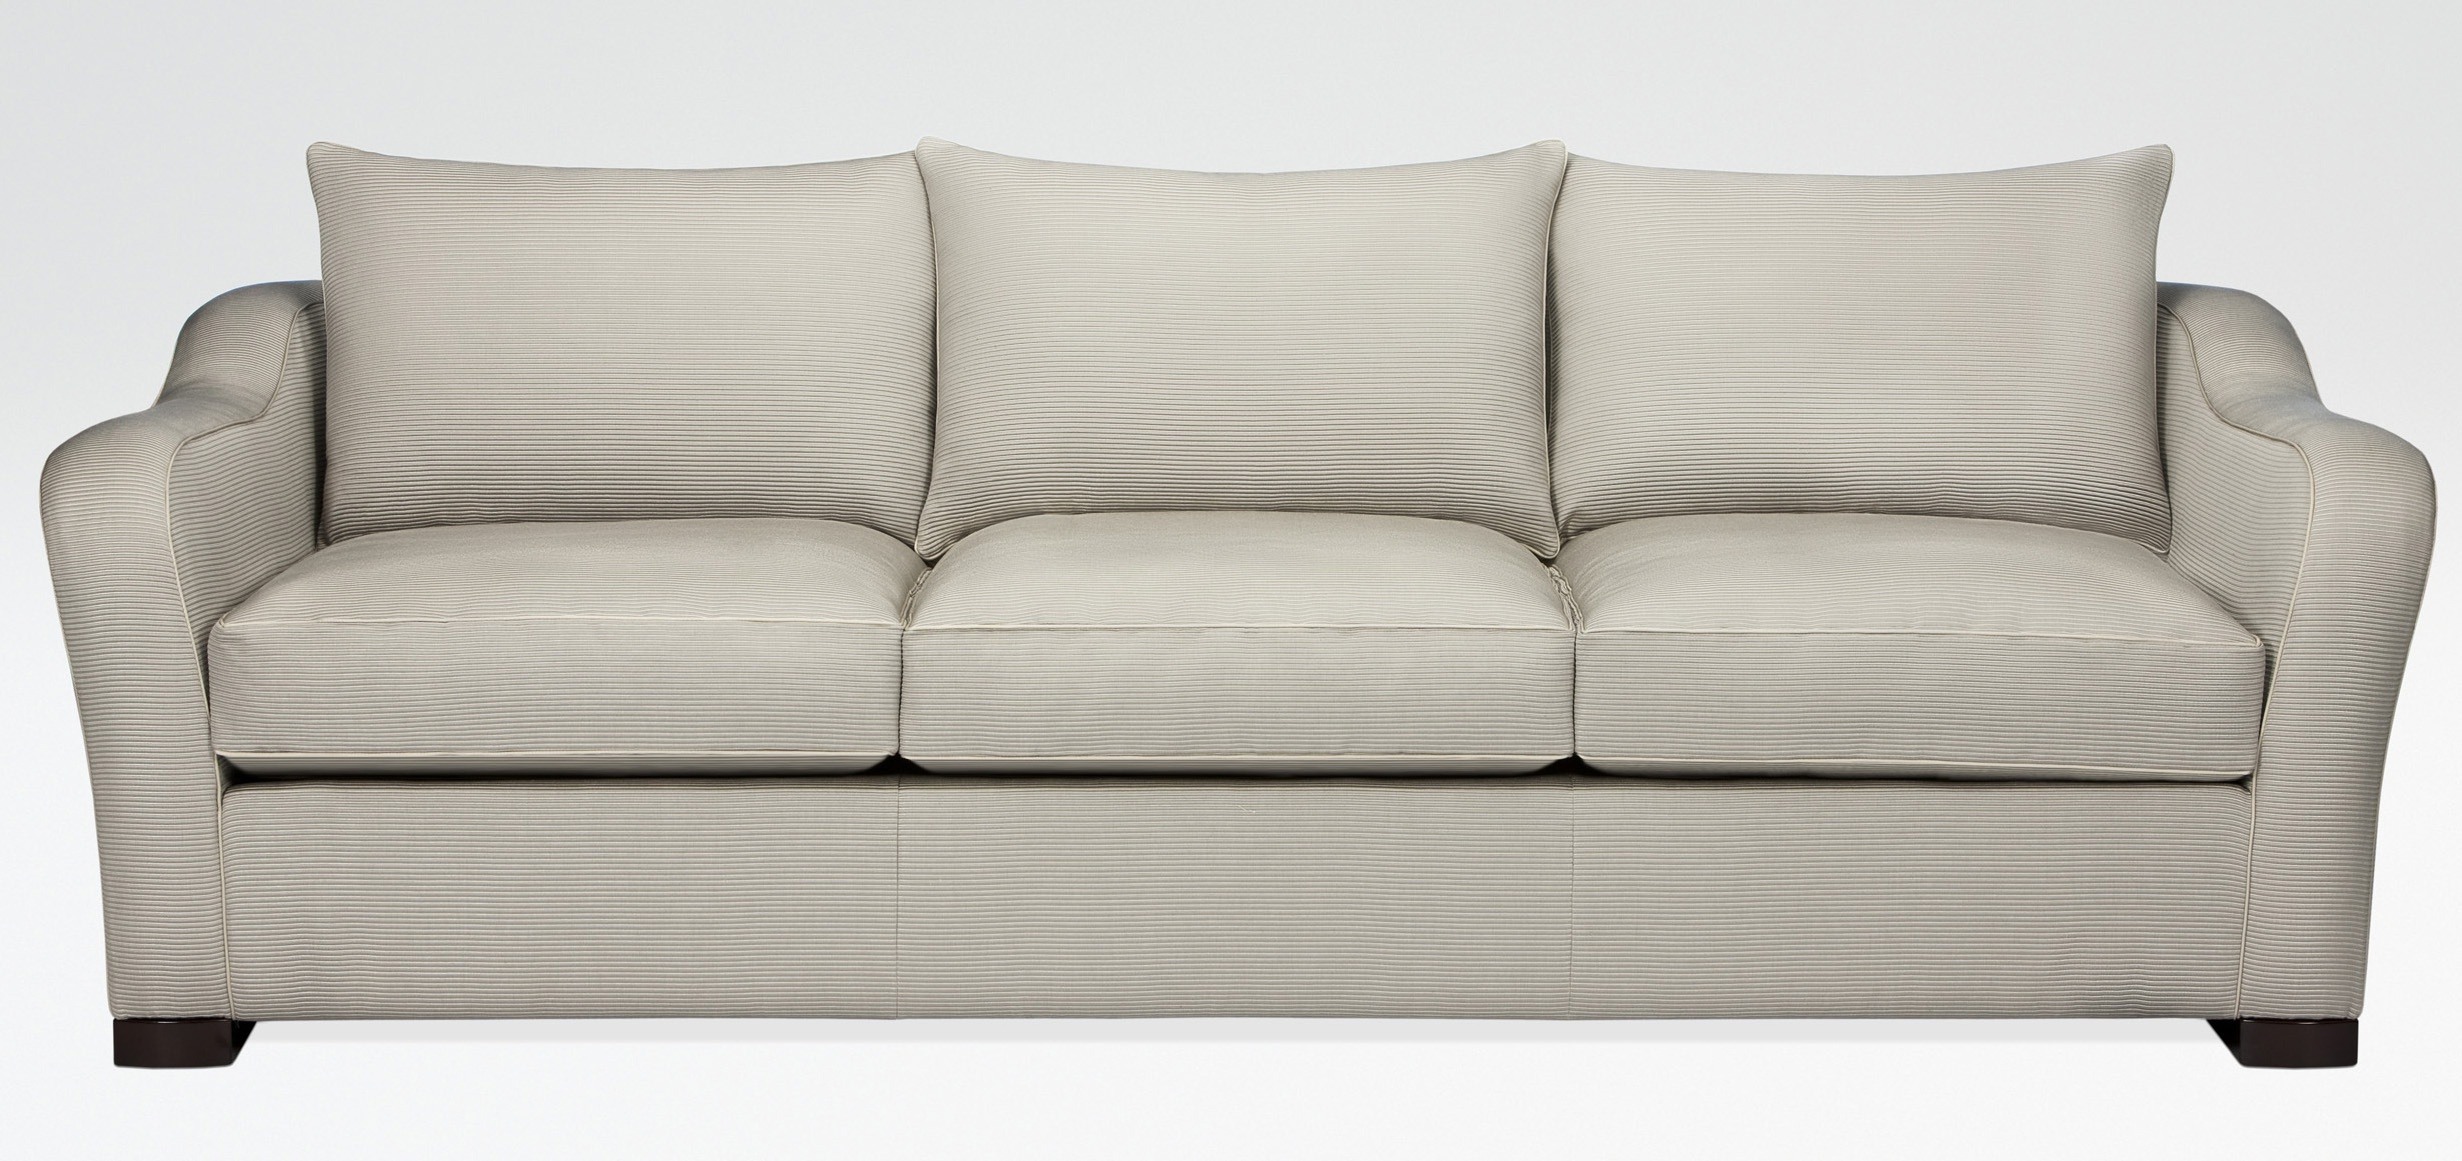 debussy three seater sofa with removable cushions armani